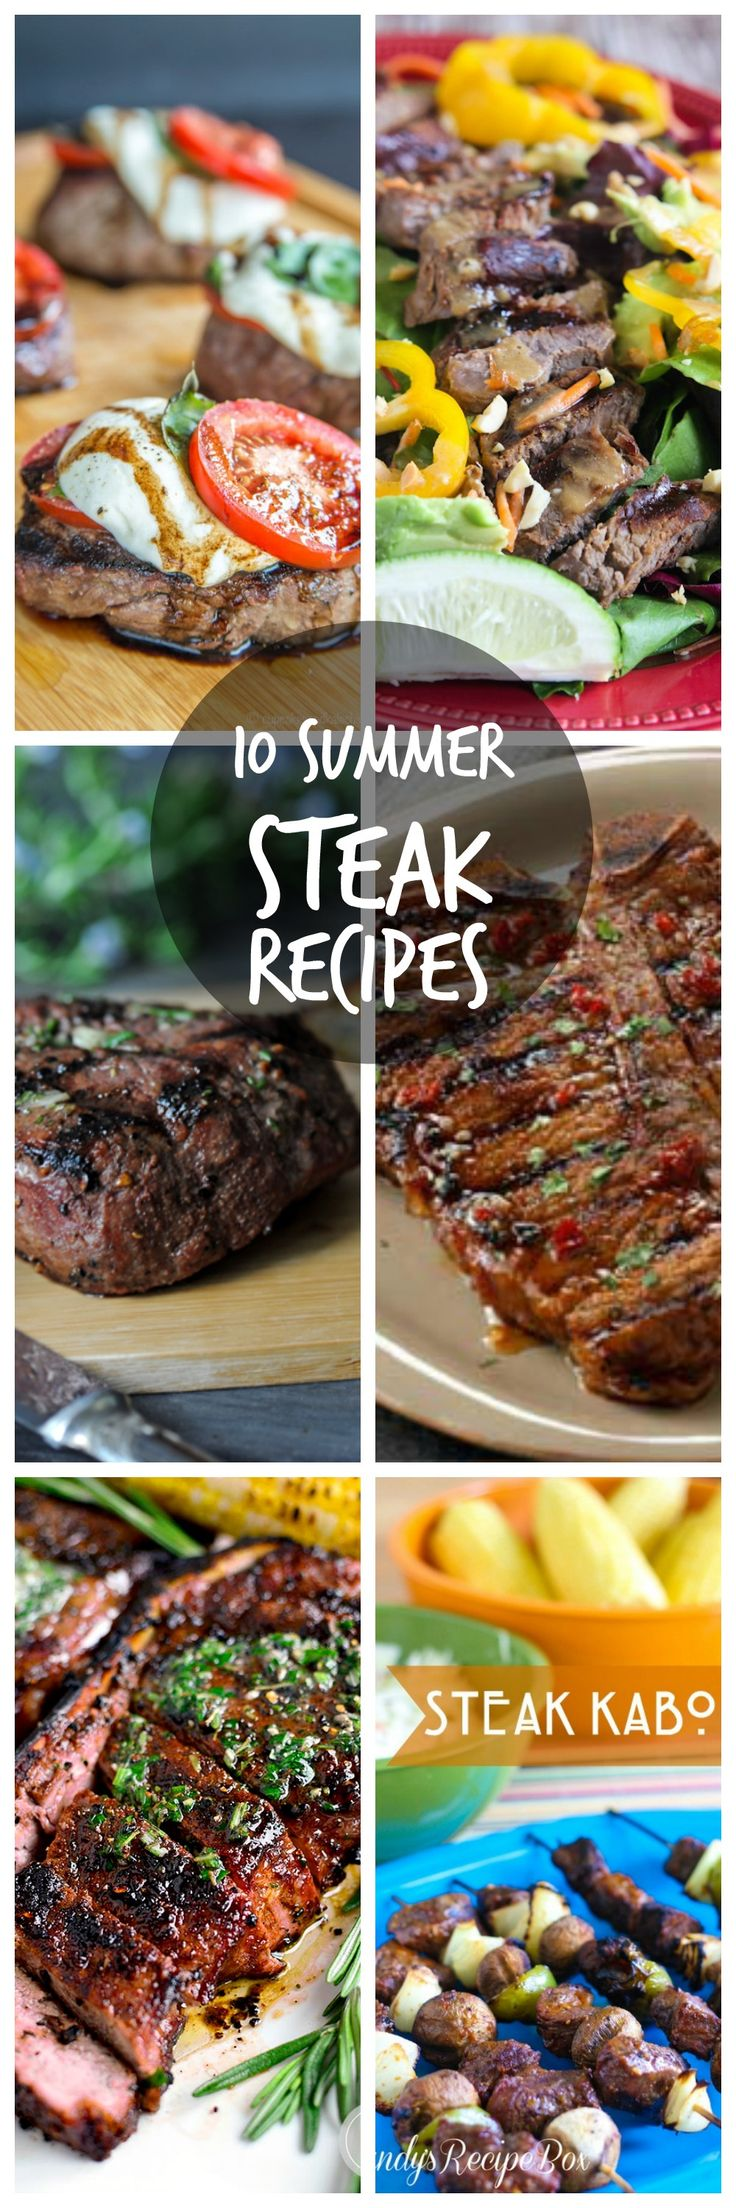 These 10 Summer Steak Recipes will have you wanting to grill all summer. I've teamed up with KC Steak Company to bring them to you along with a giveaway! Be sure to check out the details at the end. When I think of summer I think of grilling. My favorite thing to grill is a …